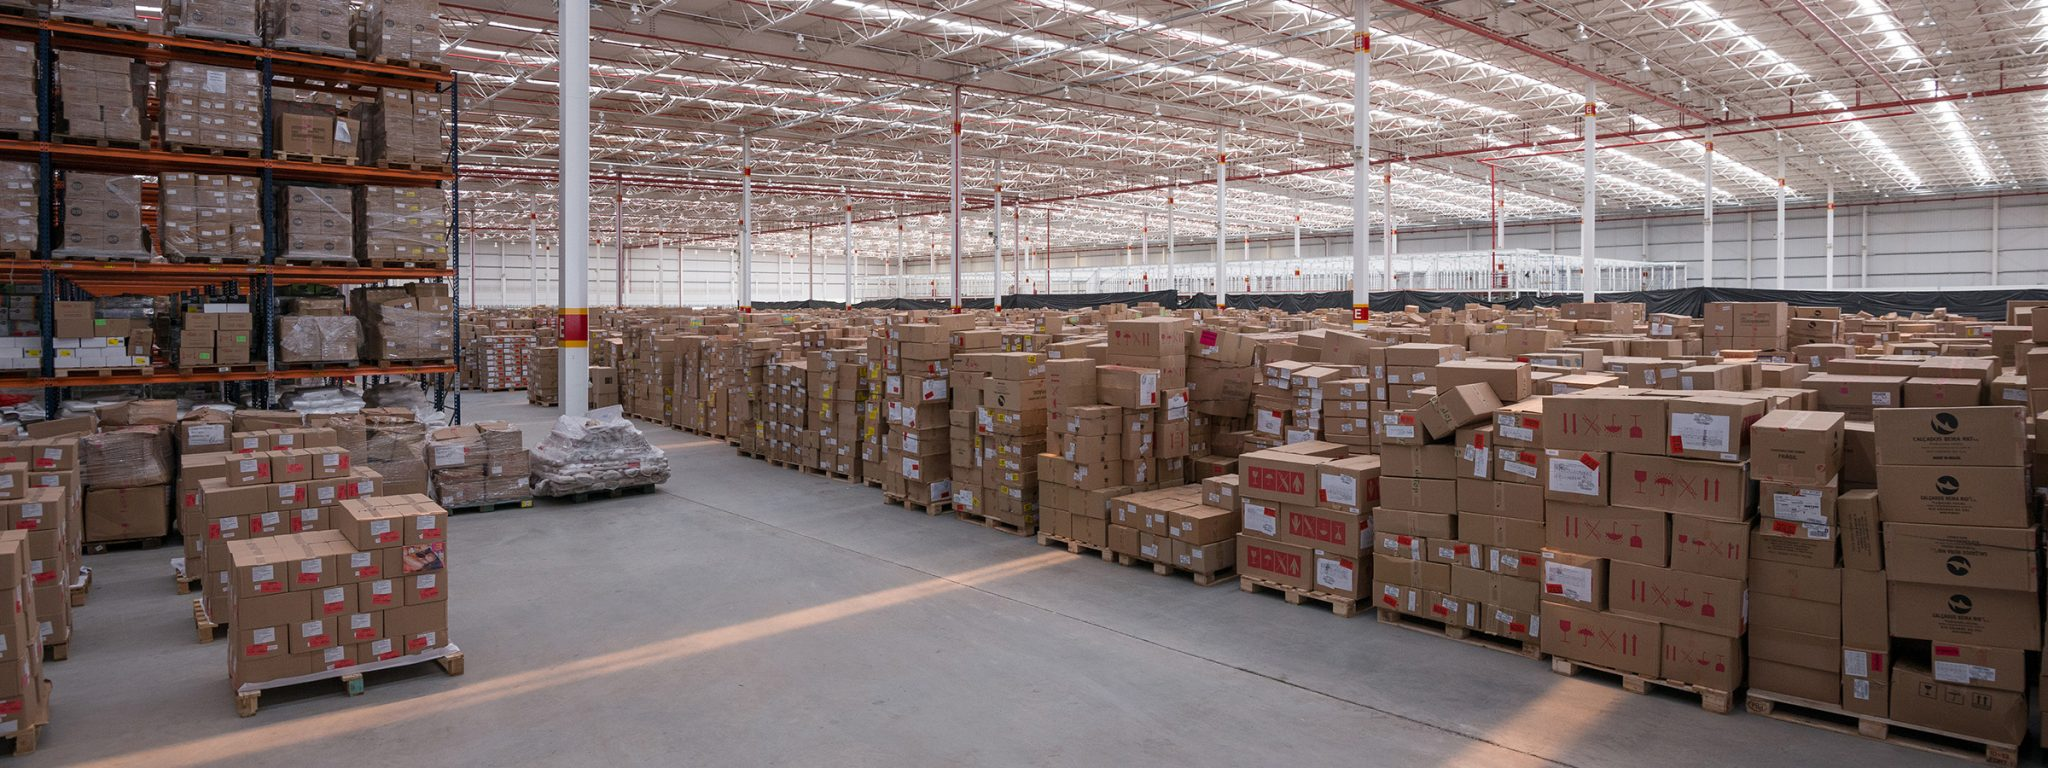 Drop Shipping Products to Sell